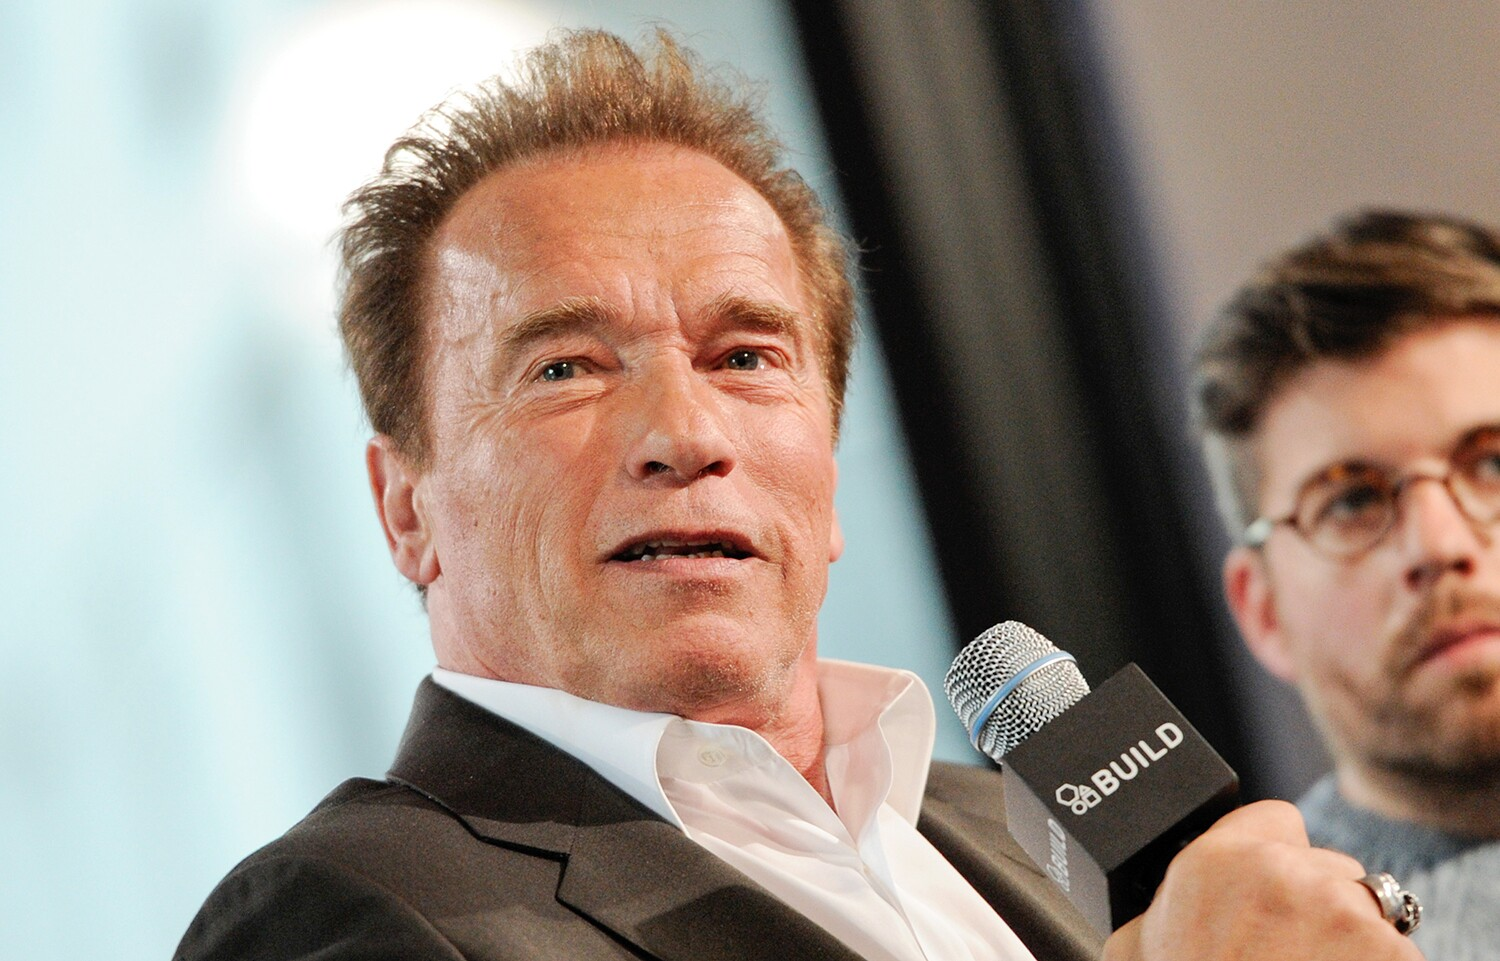 Arnold Schwarzenegger Calls Out Trump There Are Not Two Sides To Hate